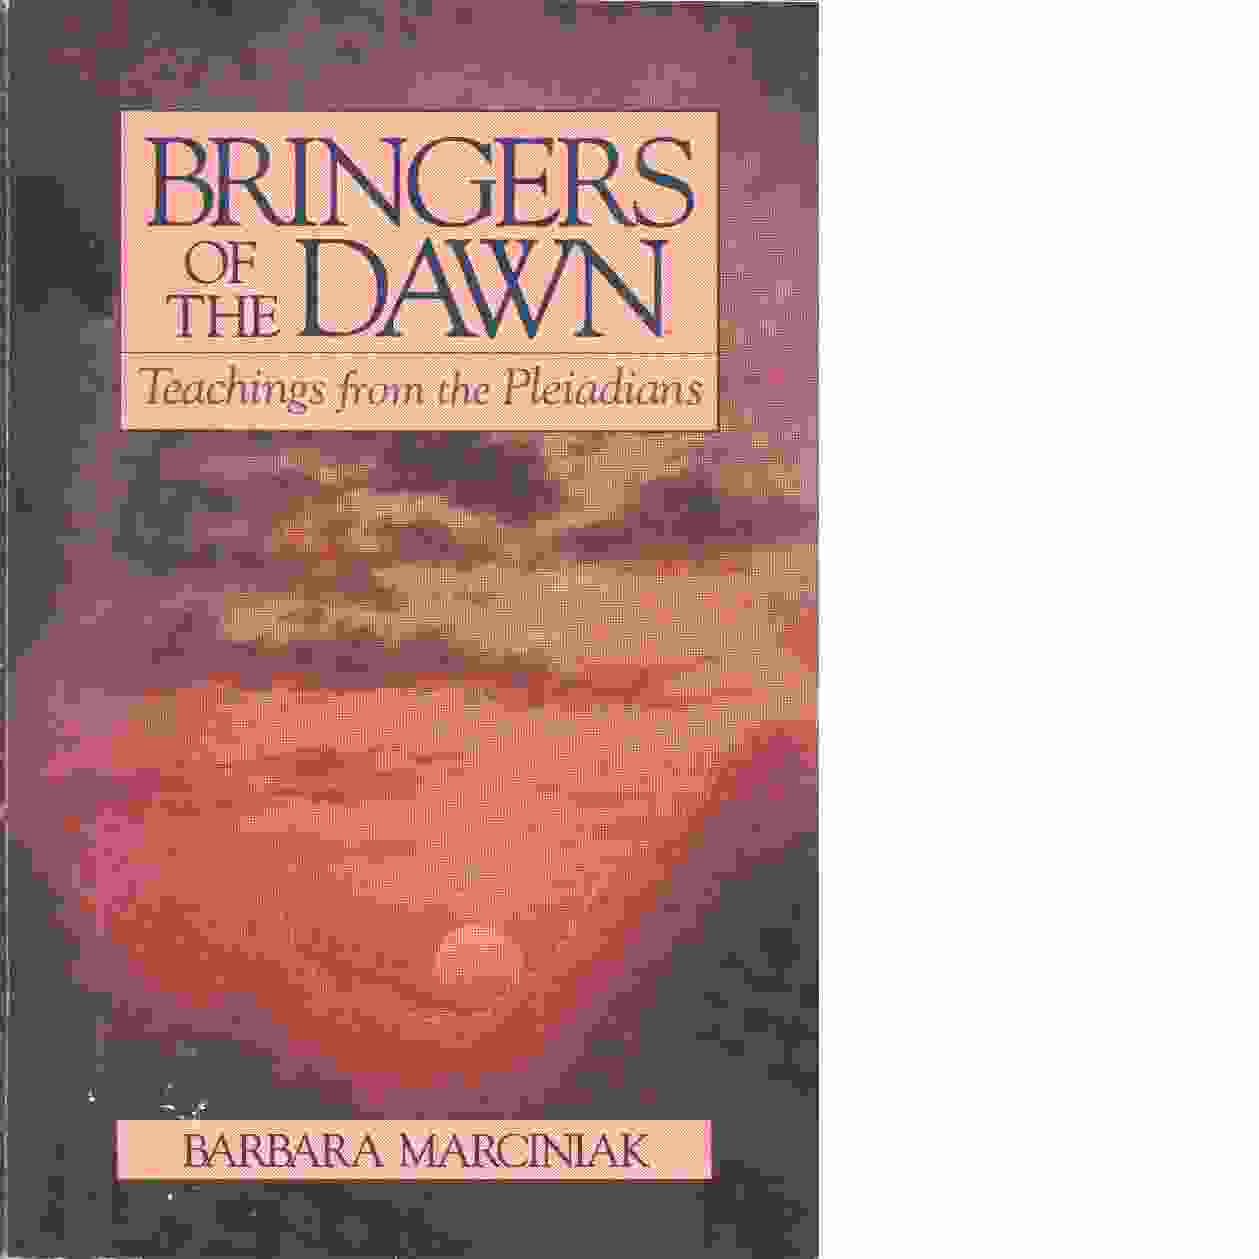 Bringers of the Dawn - Barbara Marciniak